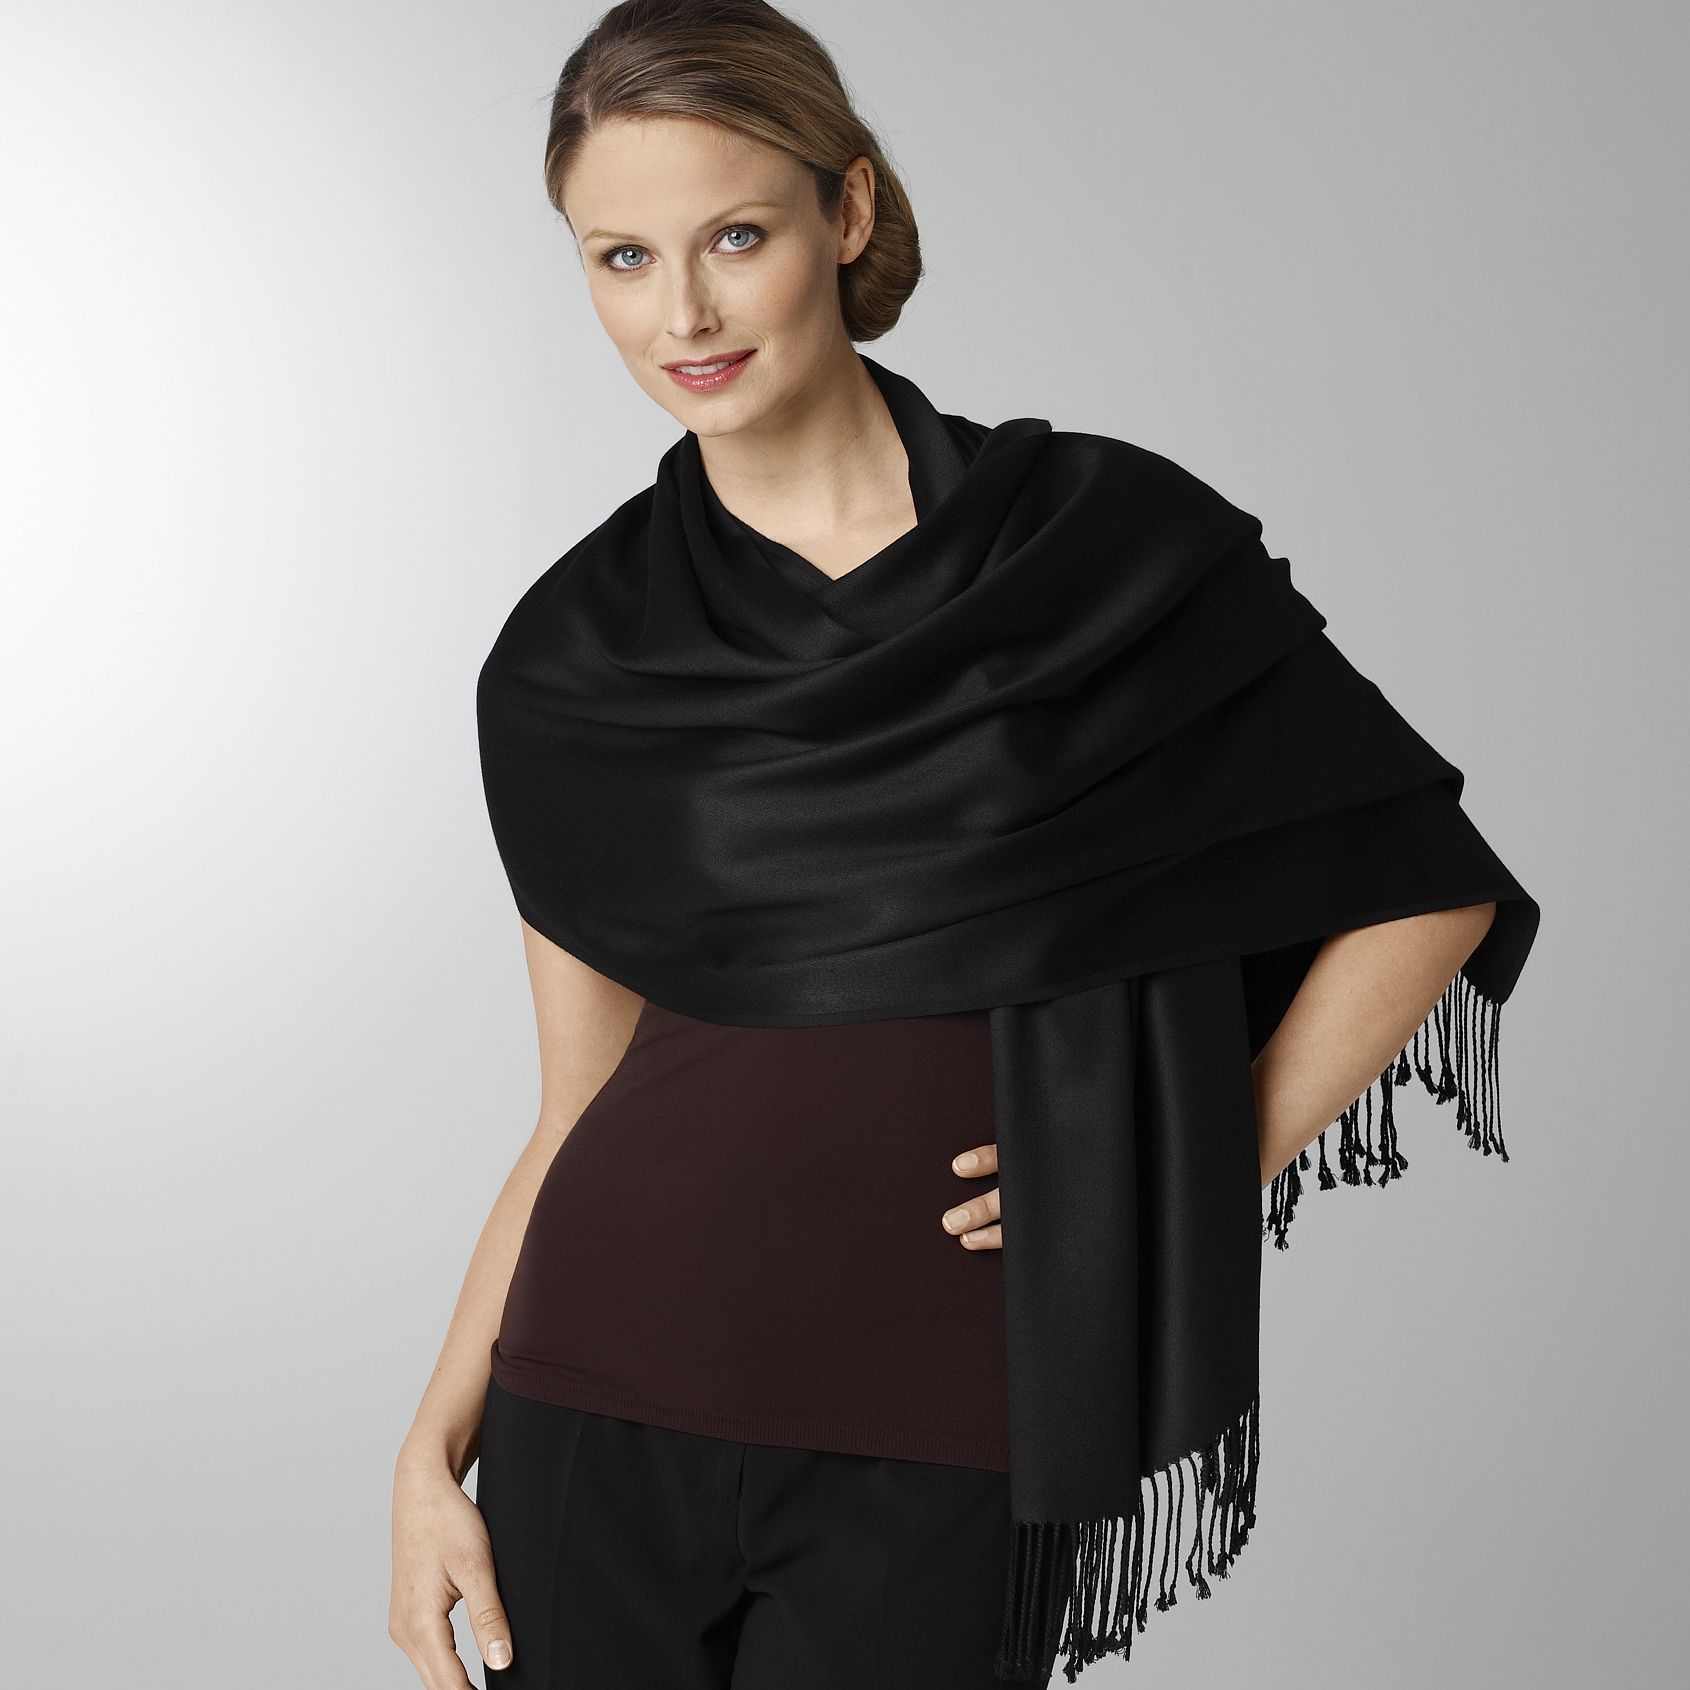 how to wear a pashmina wrap Pashmina Scarf How To Wear